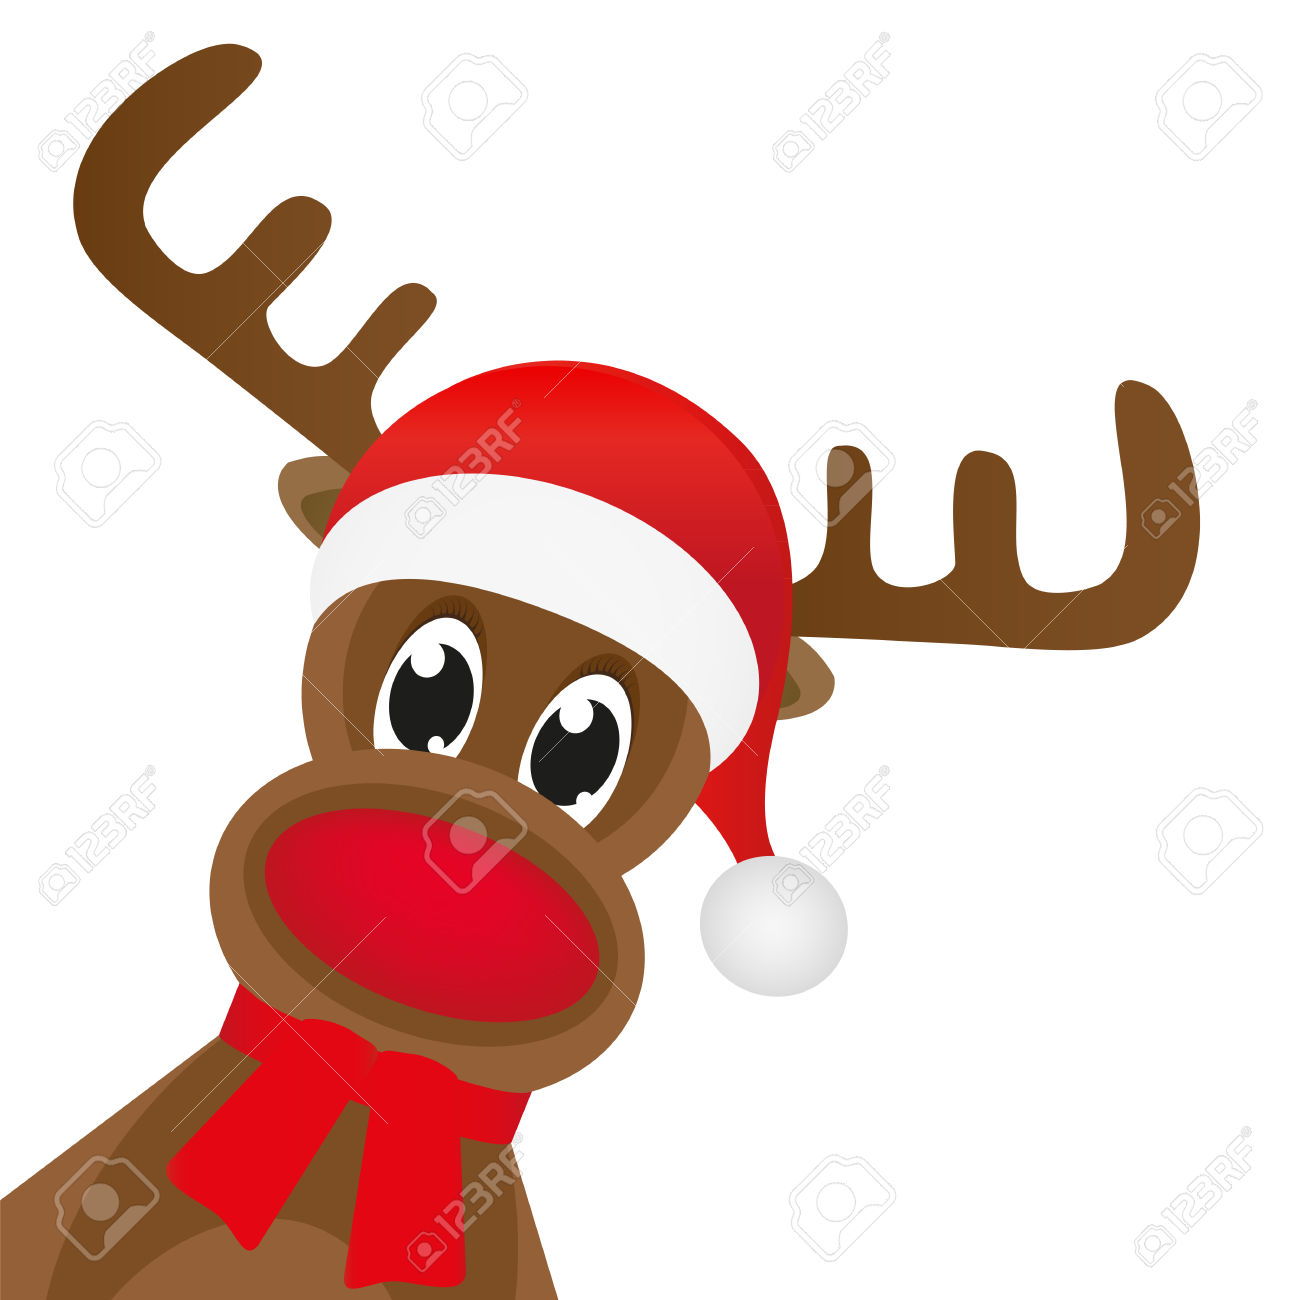 Christmas Reindeer In A Red Scarf Royalty Free Cliparts, Vectors.